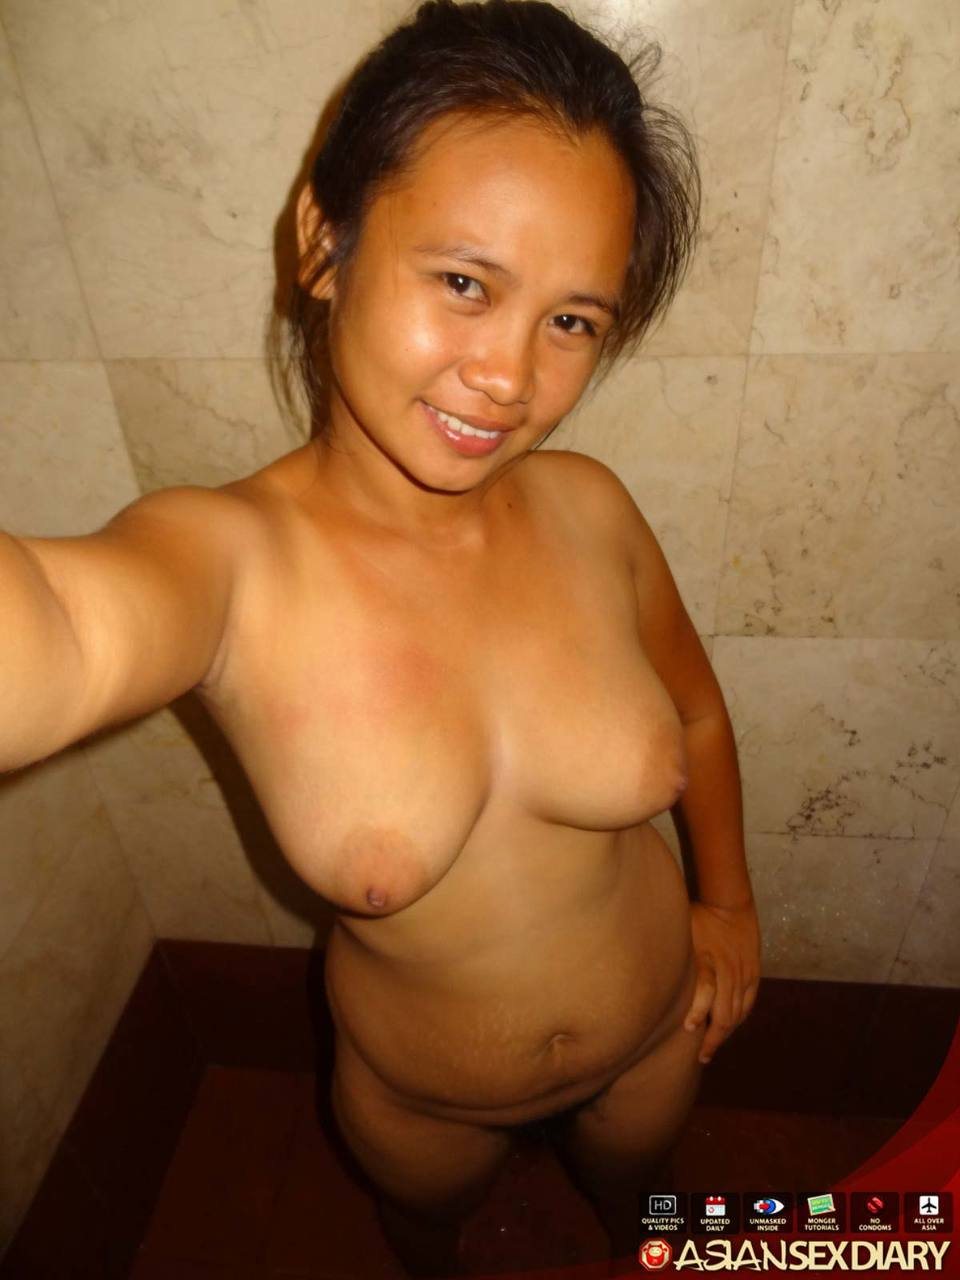 Asian amateur Janine showers before receiving a creampie from a sex tourist